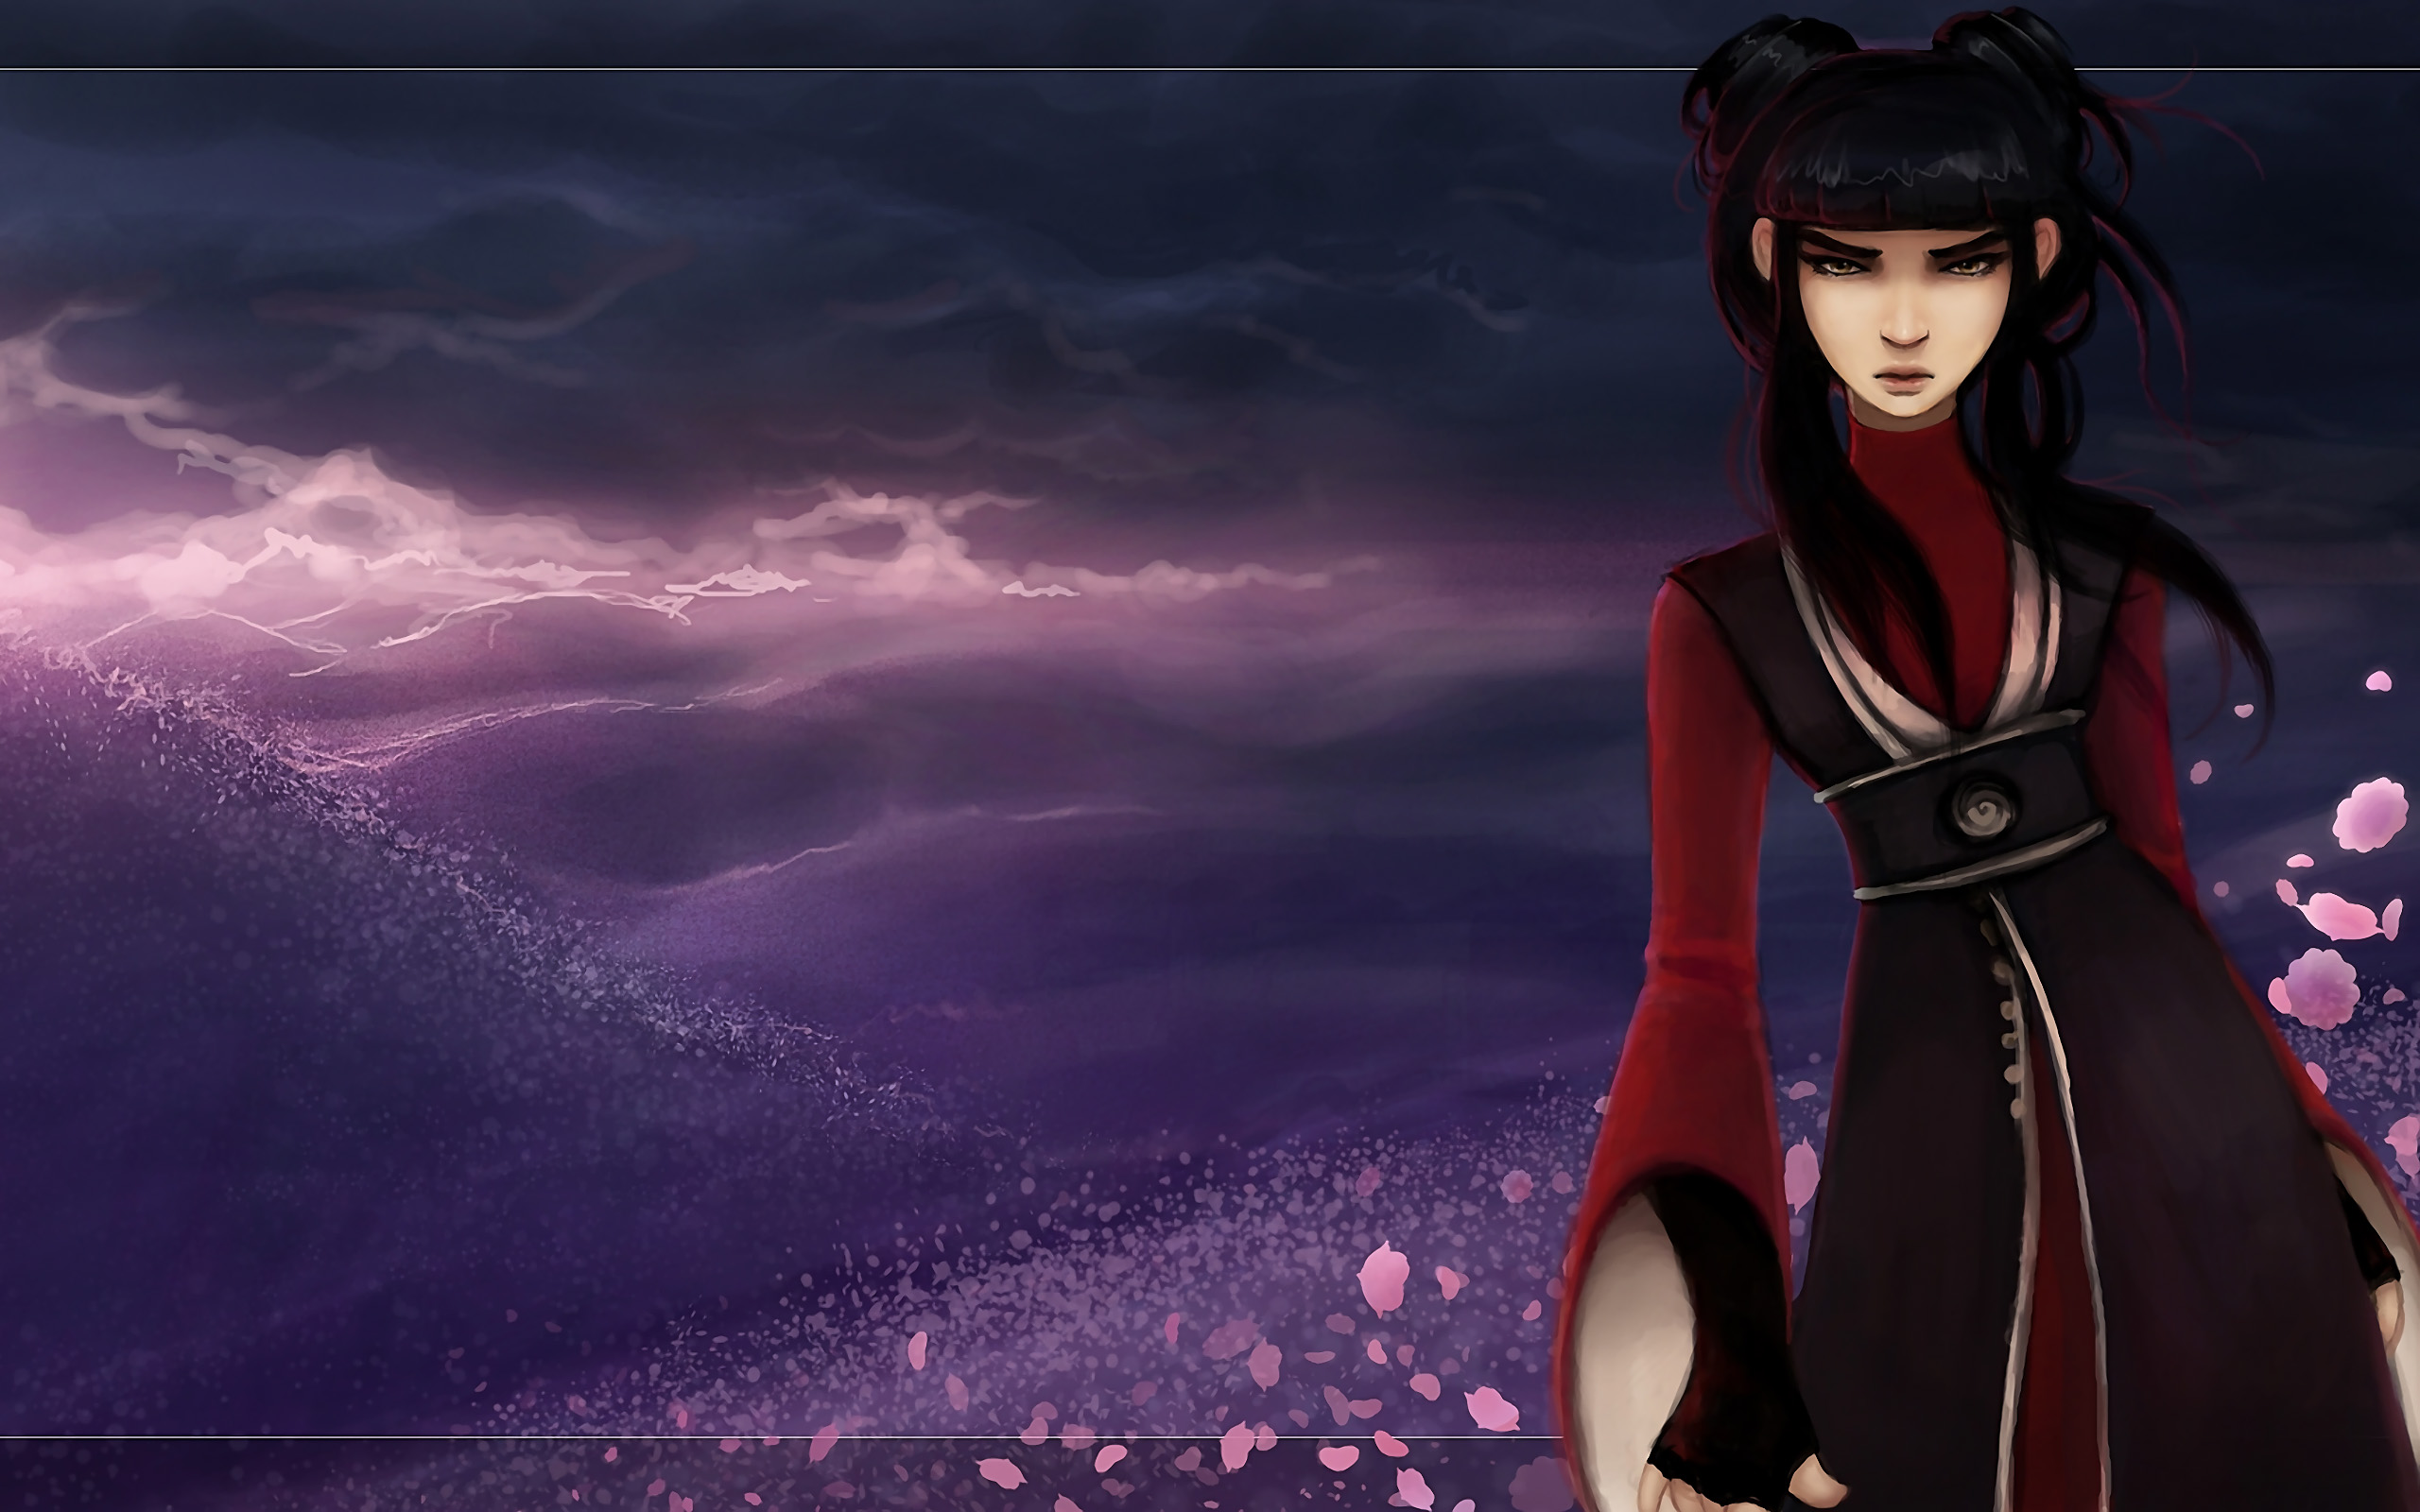 Lonely Girl Hd Wallpapers 1080p Avatar The Last Airbender Wallpapers High Quality